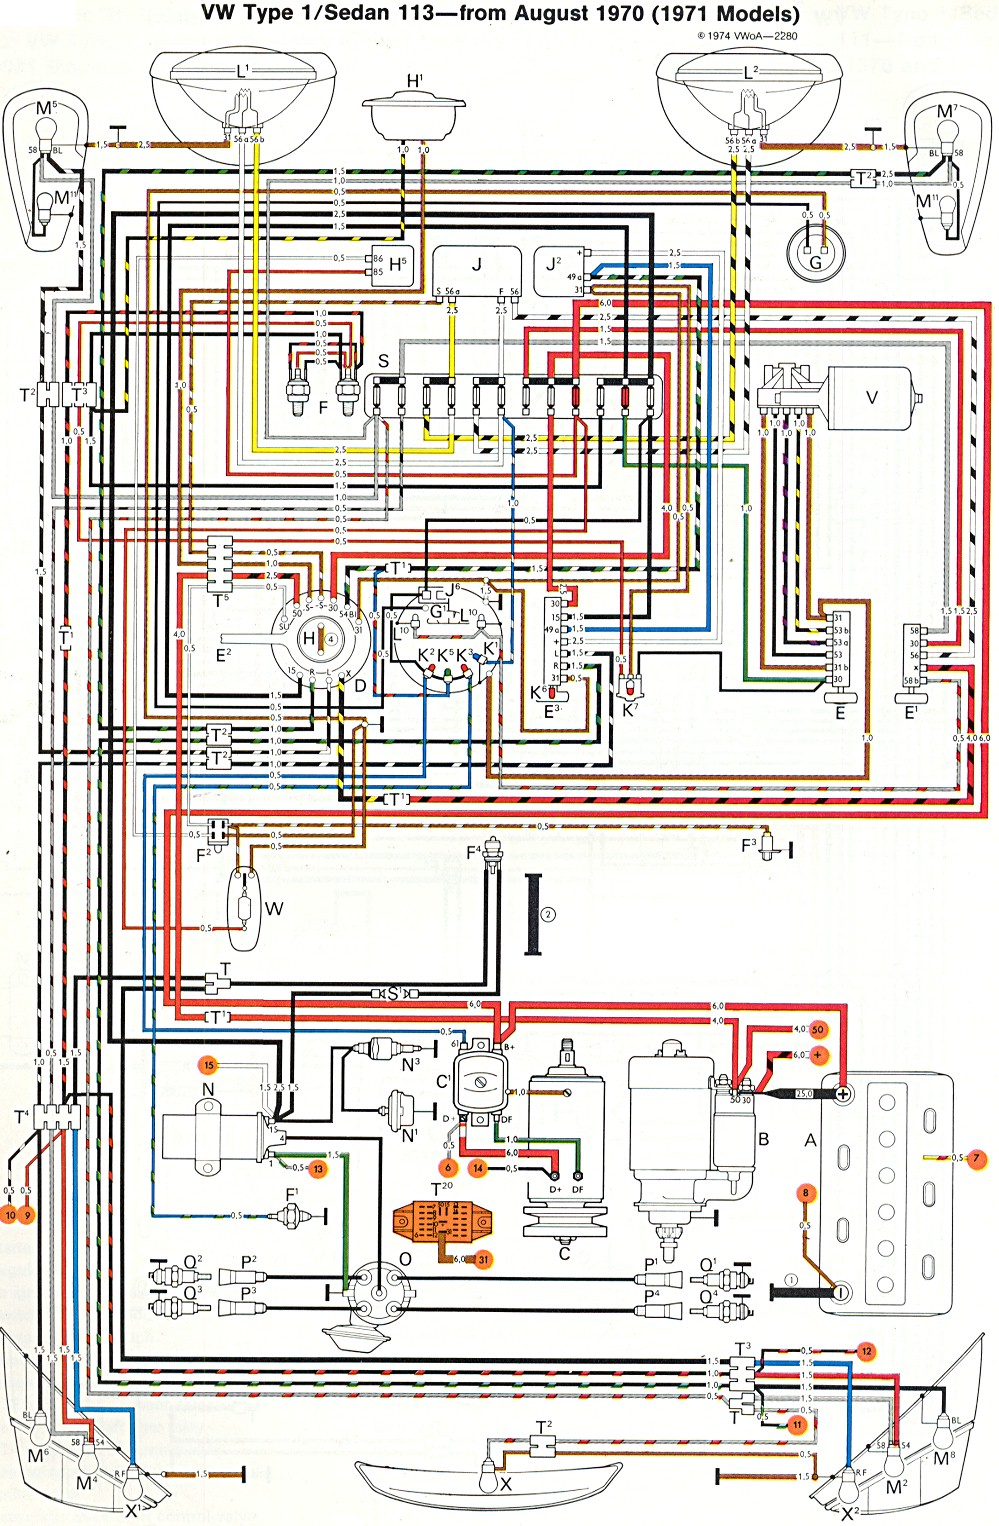 bug_super_71 1971 super beetle wiring diagram thegoldenbug com 1971 vw super beetle wiring diagram at bayanpartner.co